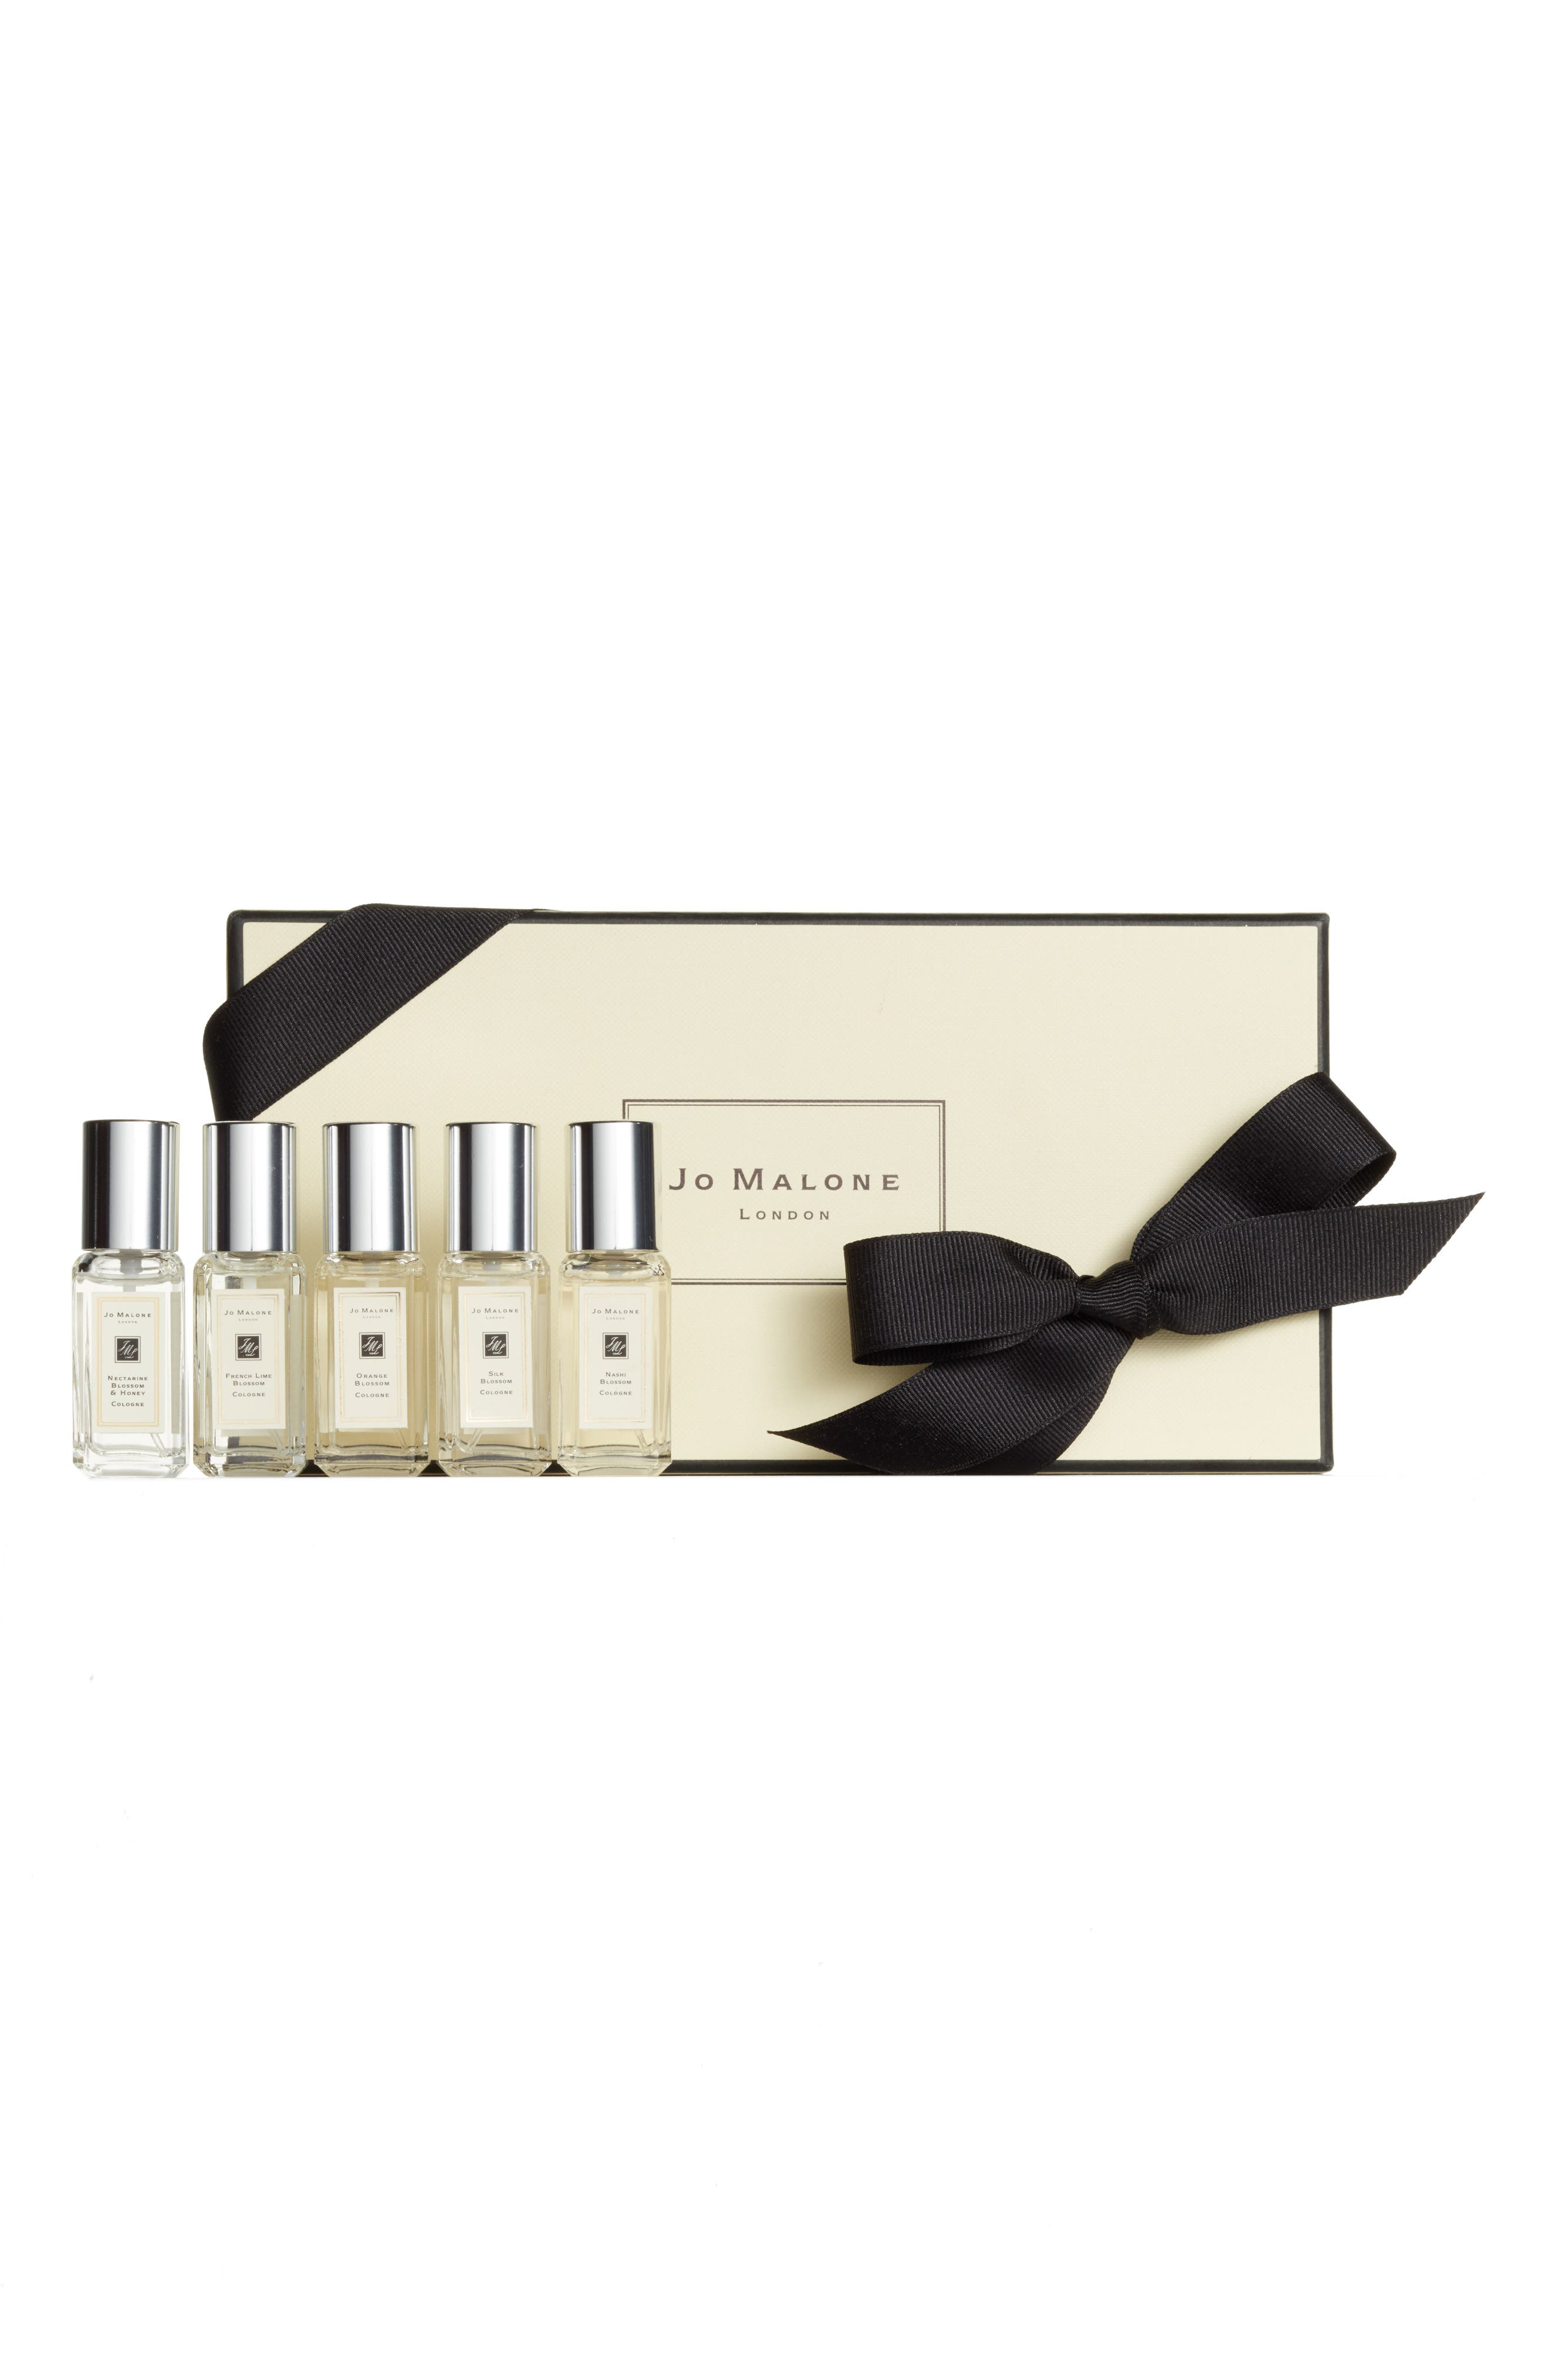 Jo Malone London™ Cologne Collection